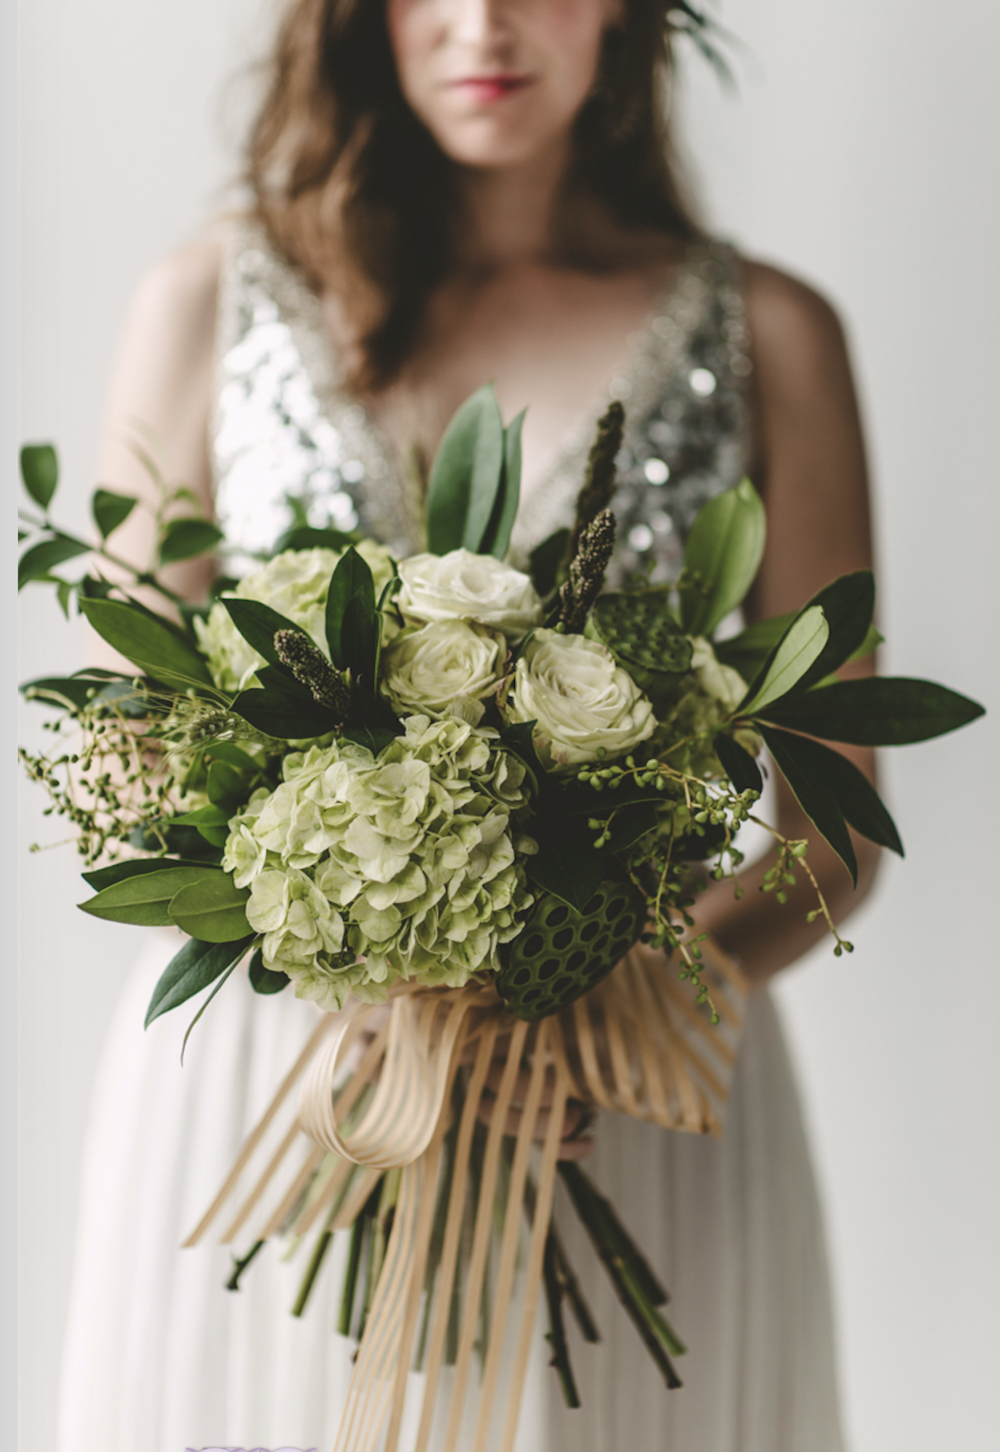 Big bridal bouquet featuring whites and greenery.